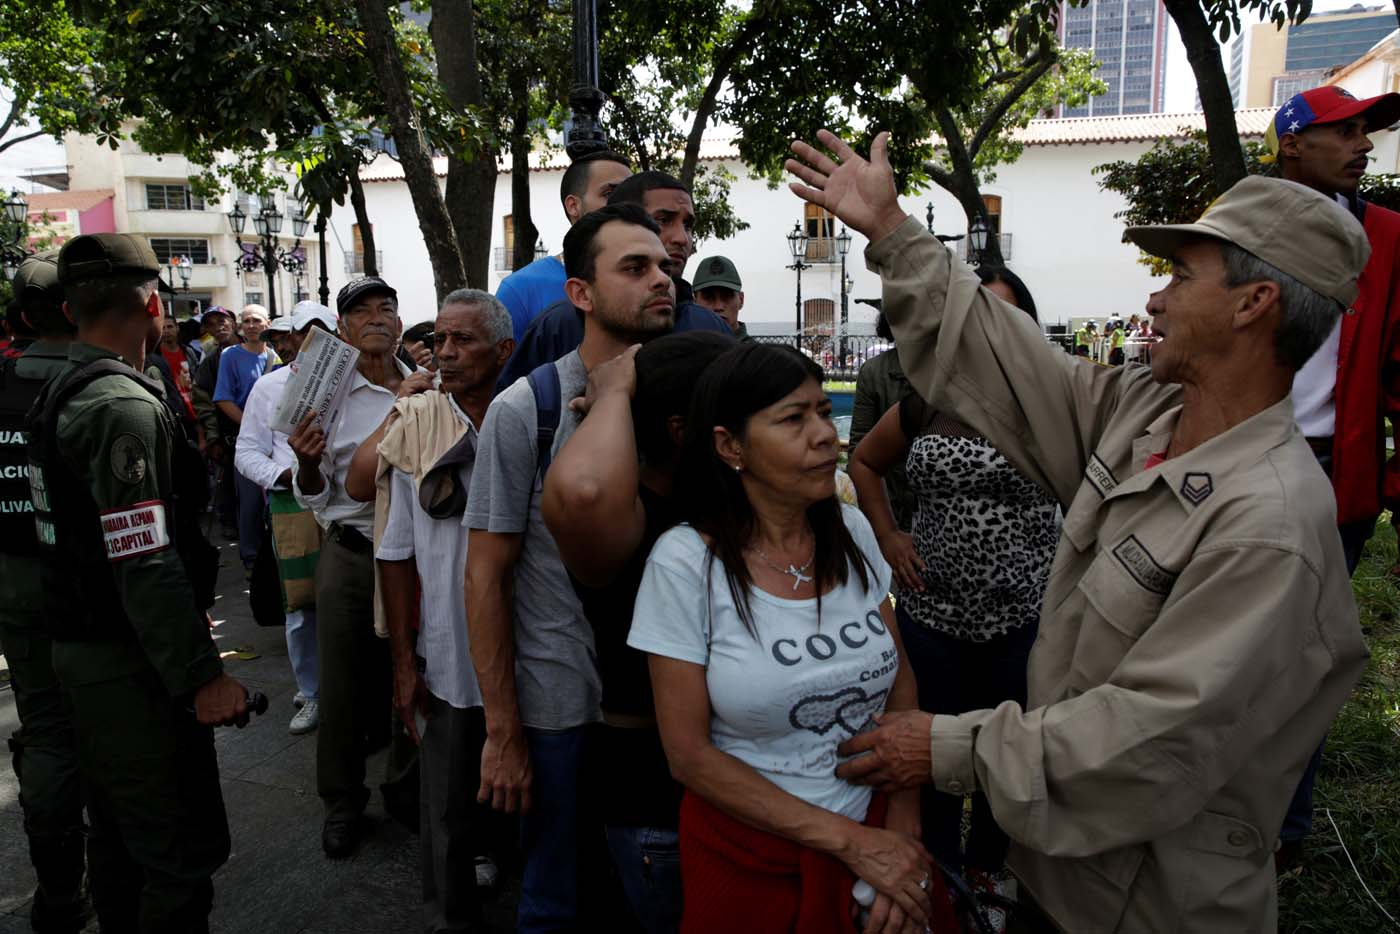 A militia member controls the crowd as people wait to apply for a card that will register them for government social programmes, in Caracas, Venezuela January 20, 2017. REUTERS/Marco Bello